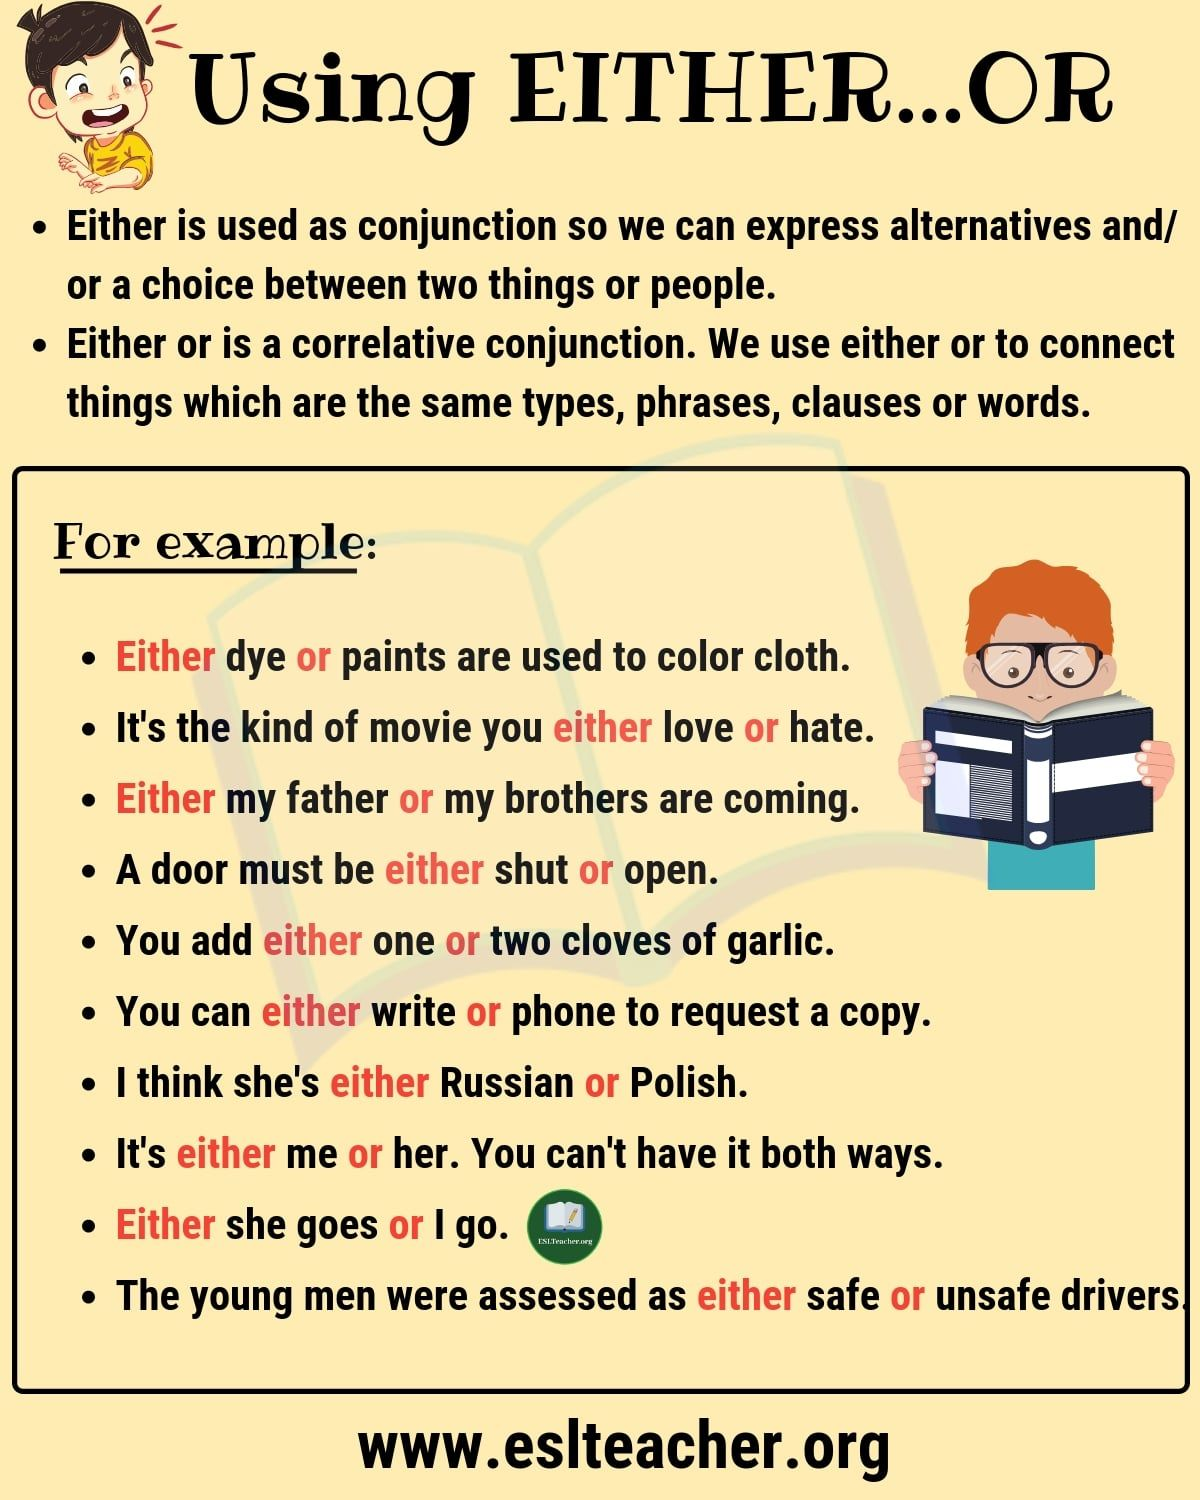 EITHER OR How to Use Either Or in a Sentence Learn